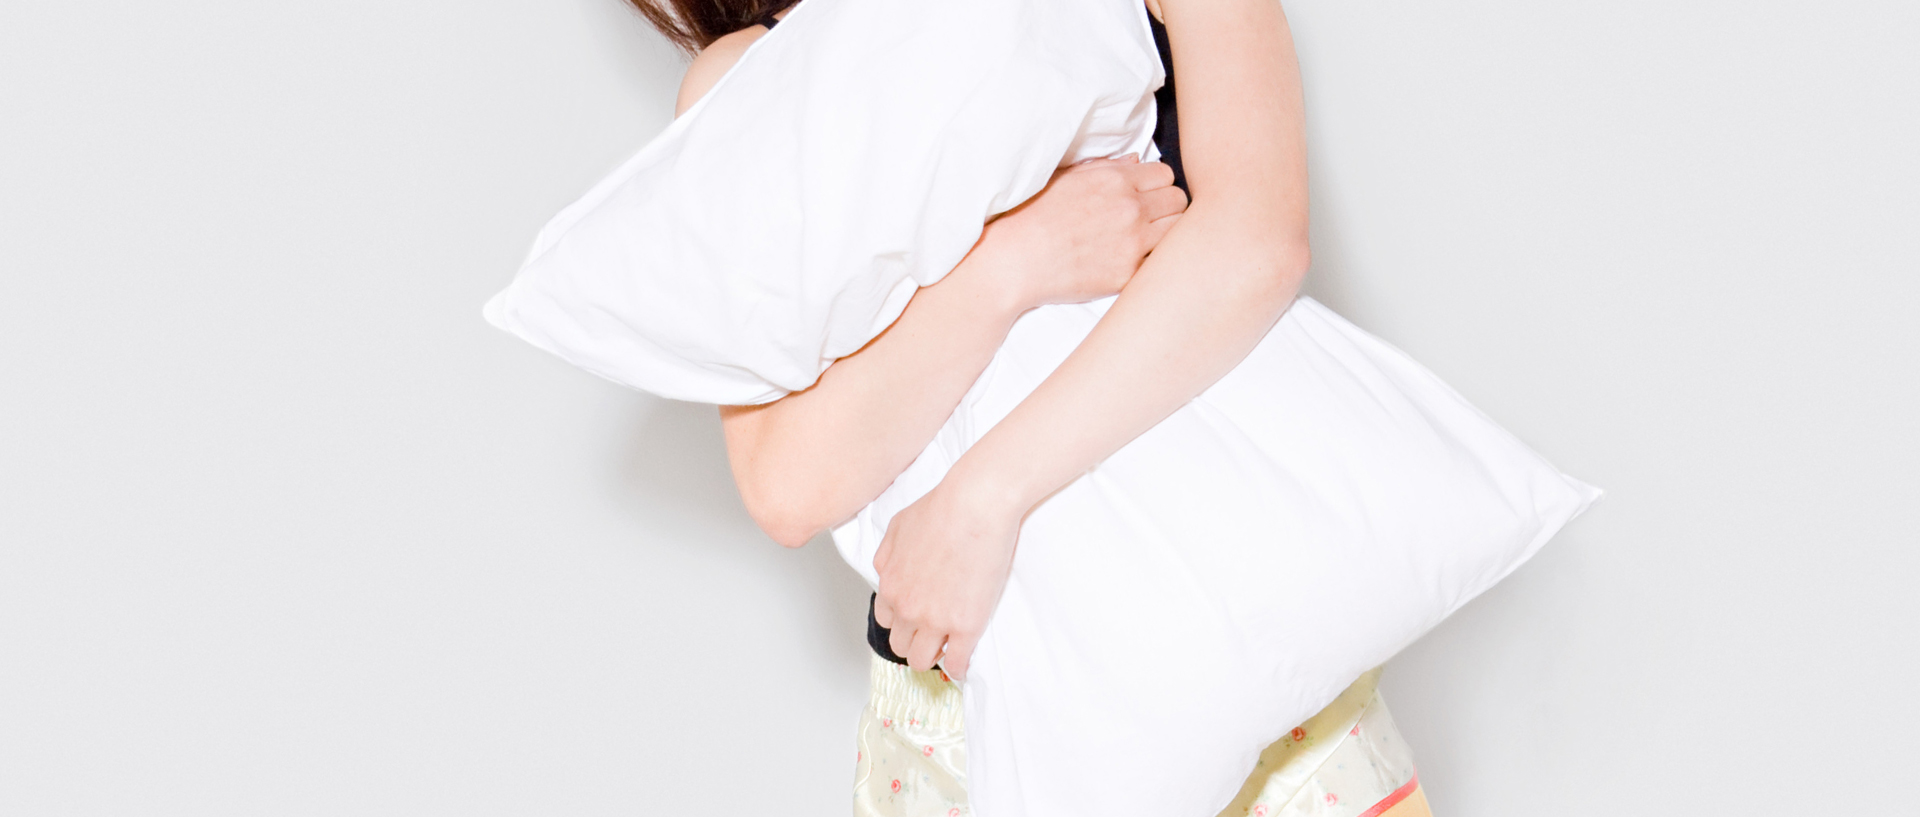 Best Pillow For Sleeping On Your Back The Best Pillow For The Way You Sleep Consumer Reports